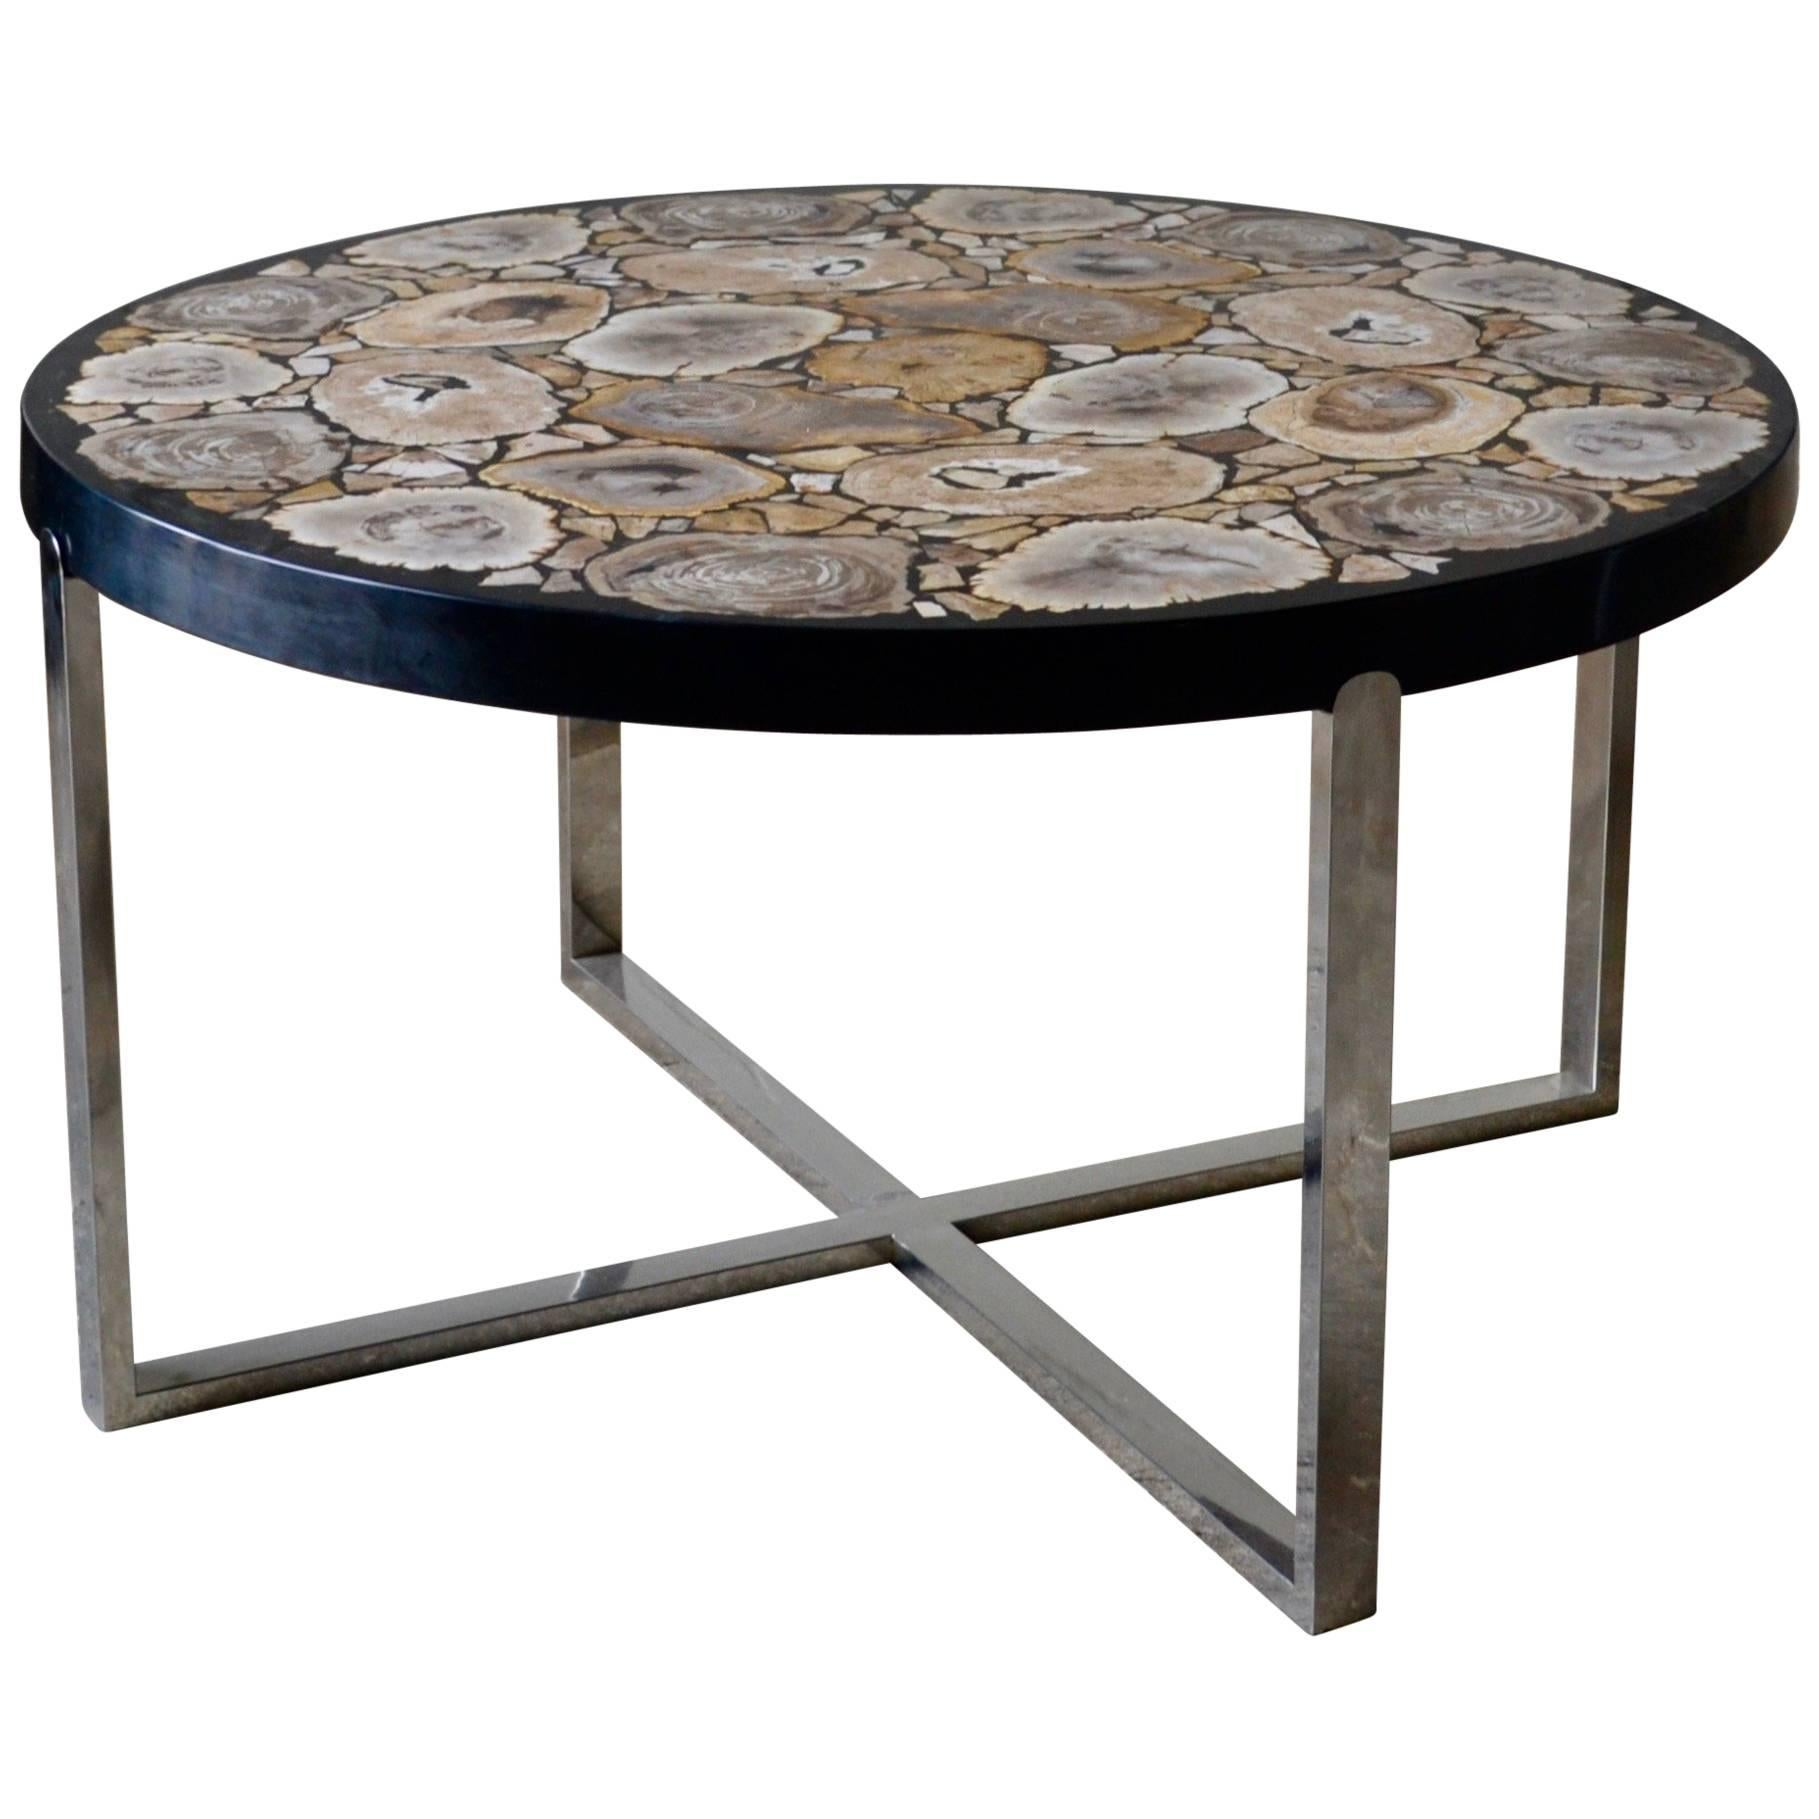 Petrified Wood Round Coffee Table Black Gloss And Stainless Steel Base For  Sale